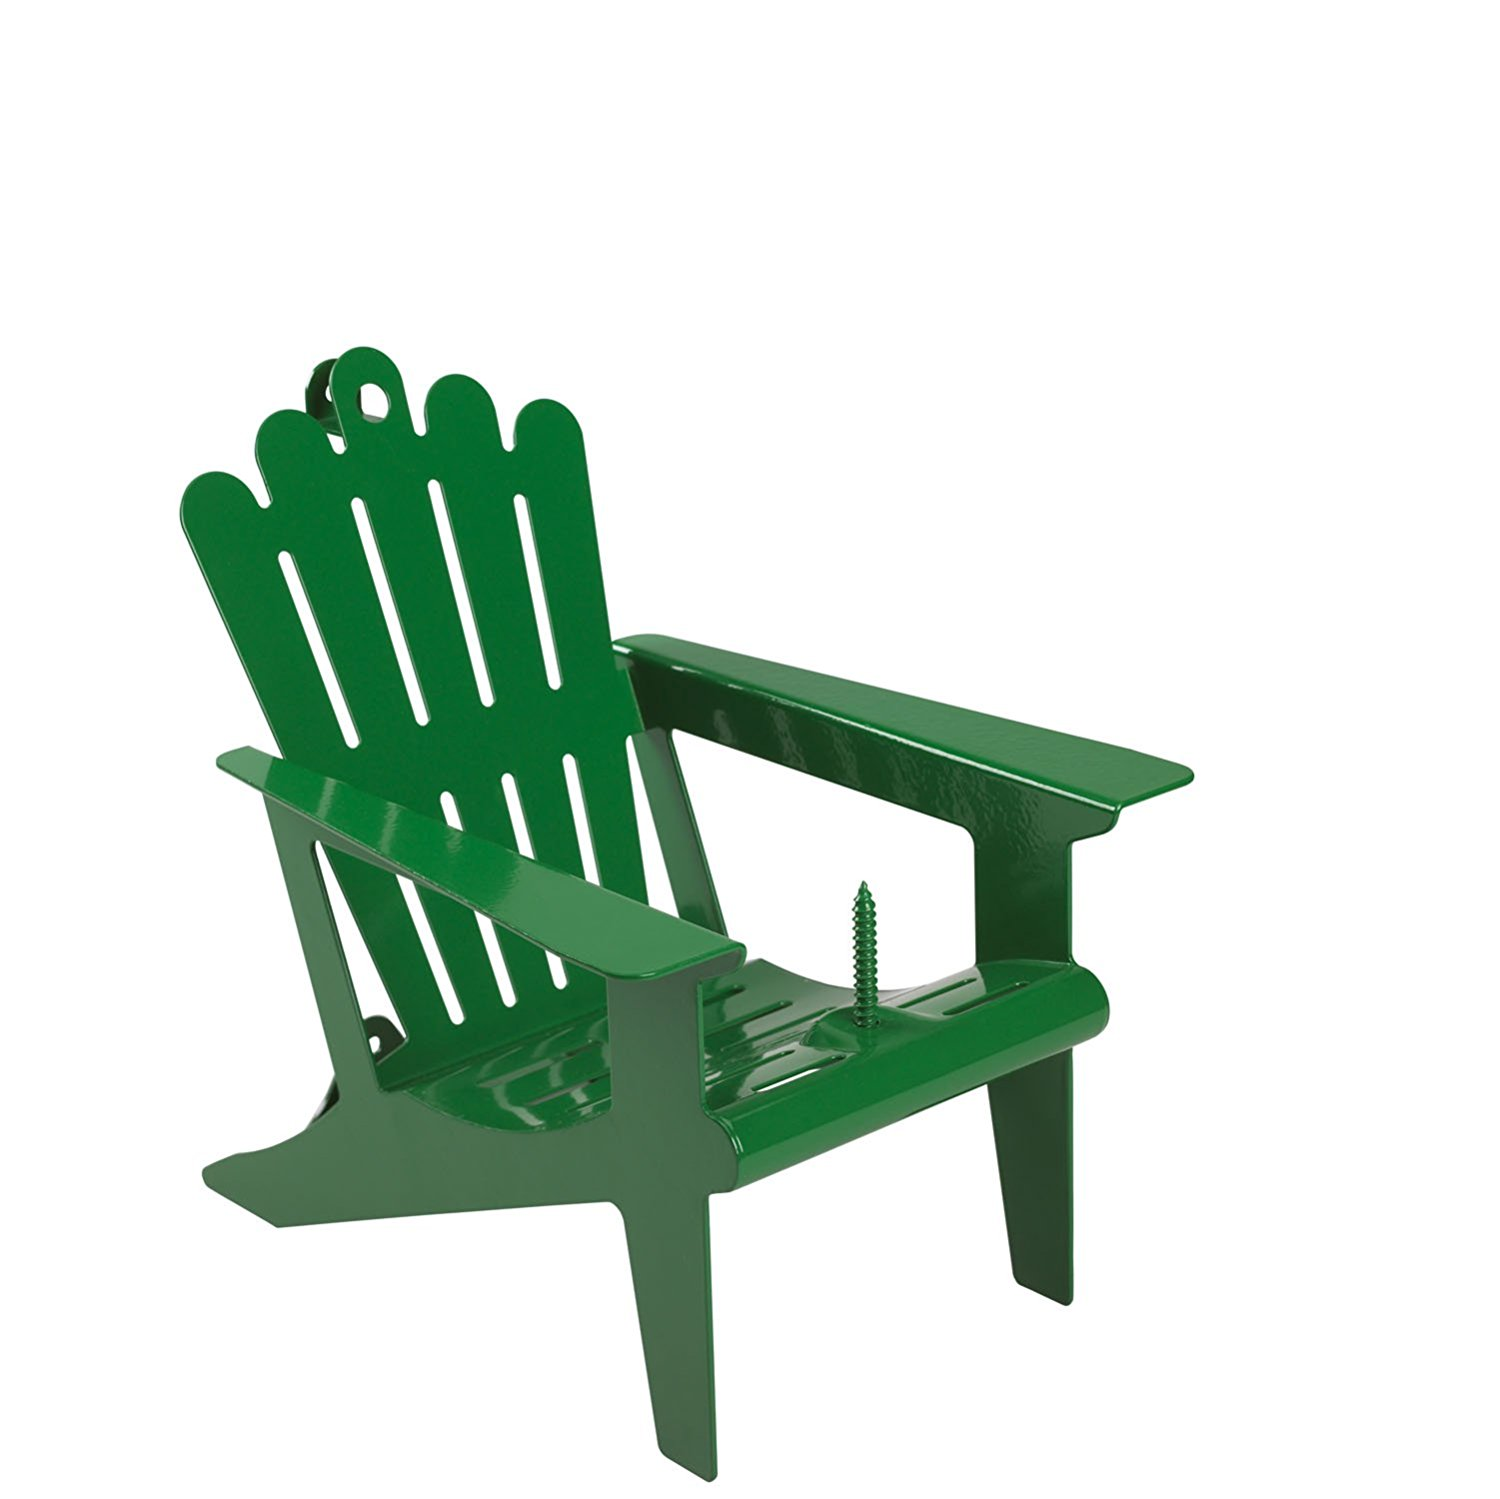 Belle Fleur Adirondack Chair Squirrel Feeder with 1 Corn Cob Capacity – Available in 2 Colors